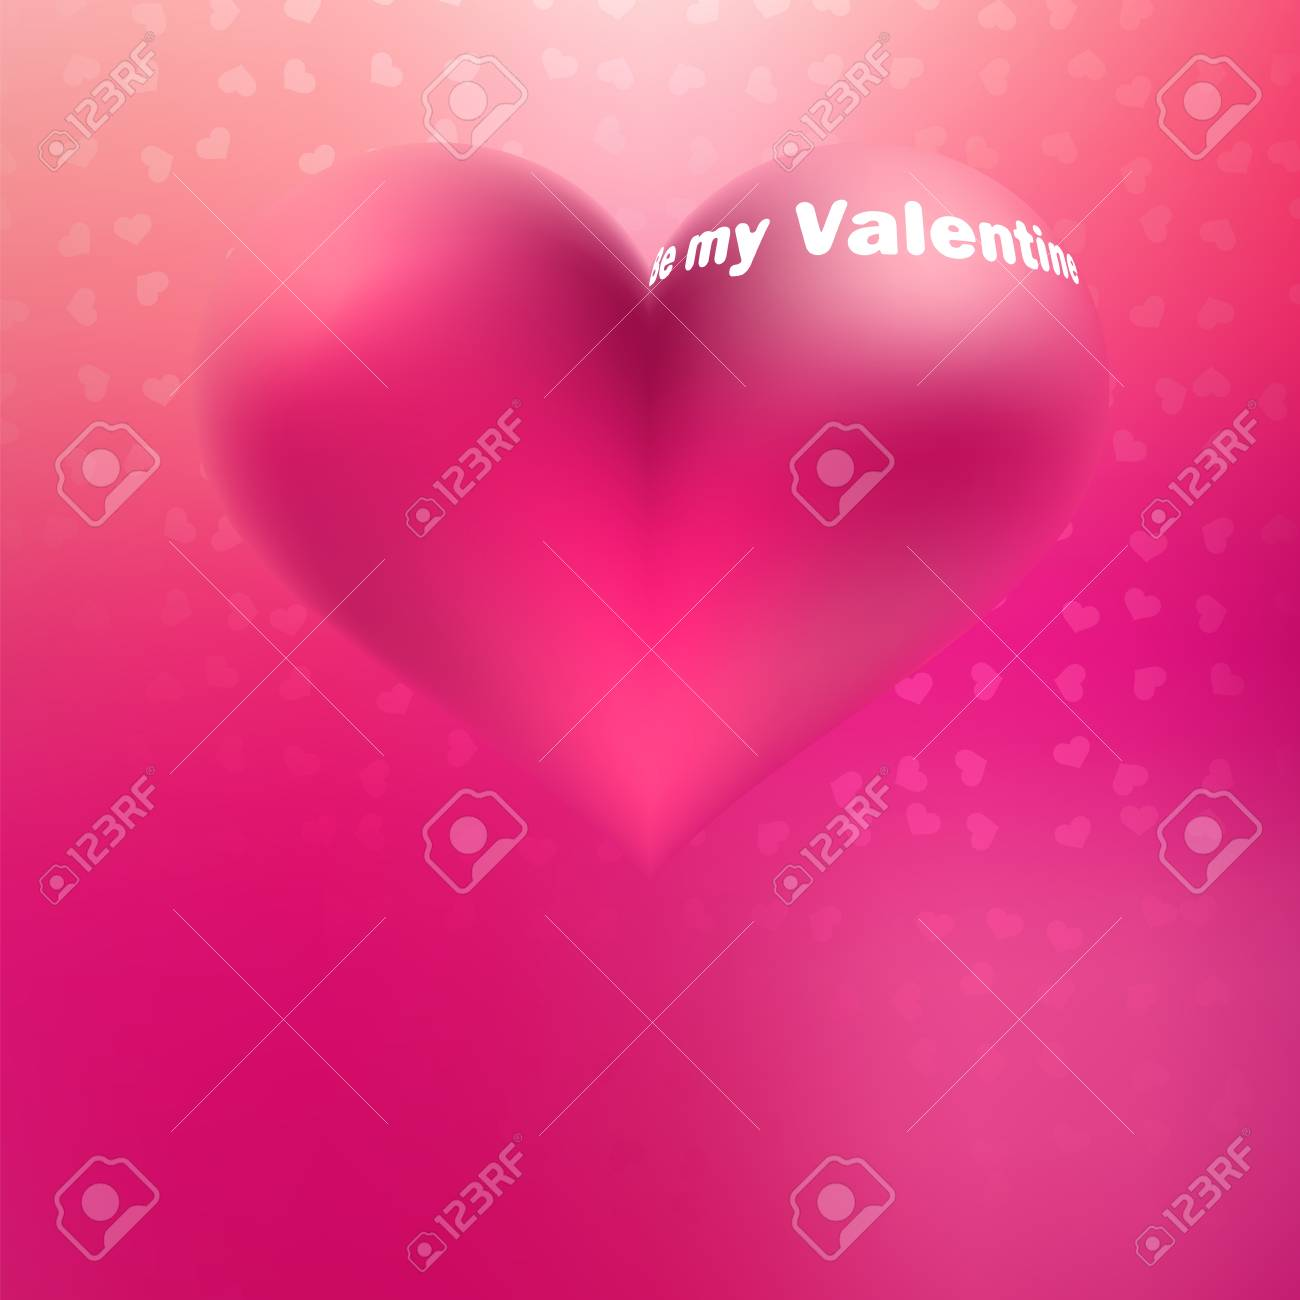 Illustration of beautiful pink glossy heart shape     EPS8 Stock Vector - 17525624